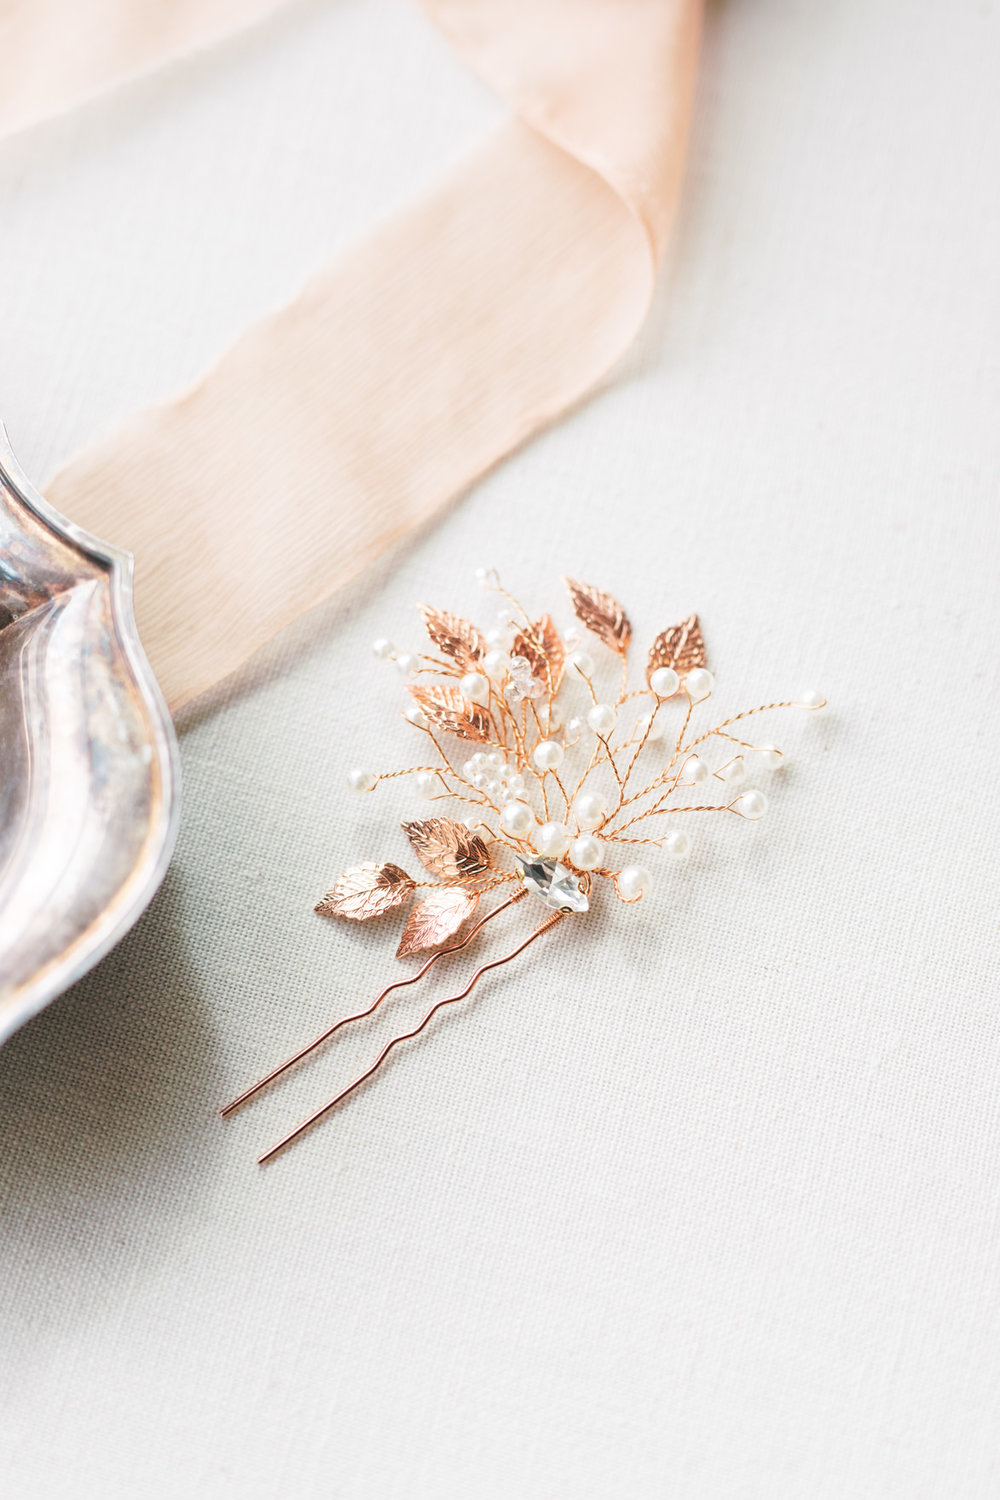 There were a few little touches of rose gold, like in this hairpin with pearls, that added a modern metallic element to this modern and elegant old city Philadelphia wedding at Power Plant Productions. Power Plant Production wedding photographer